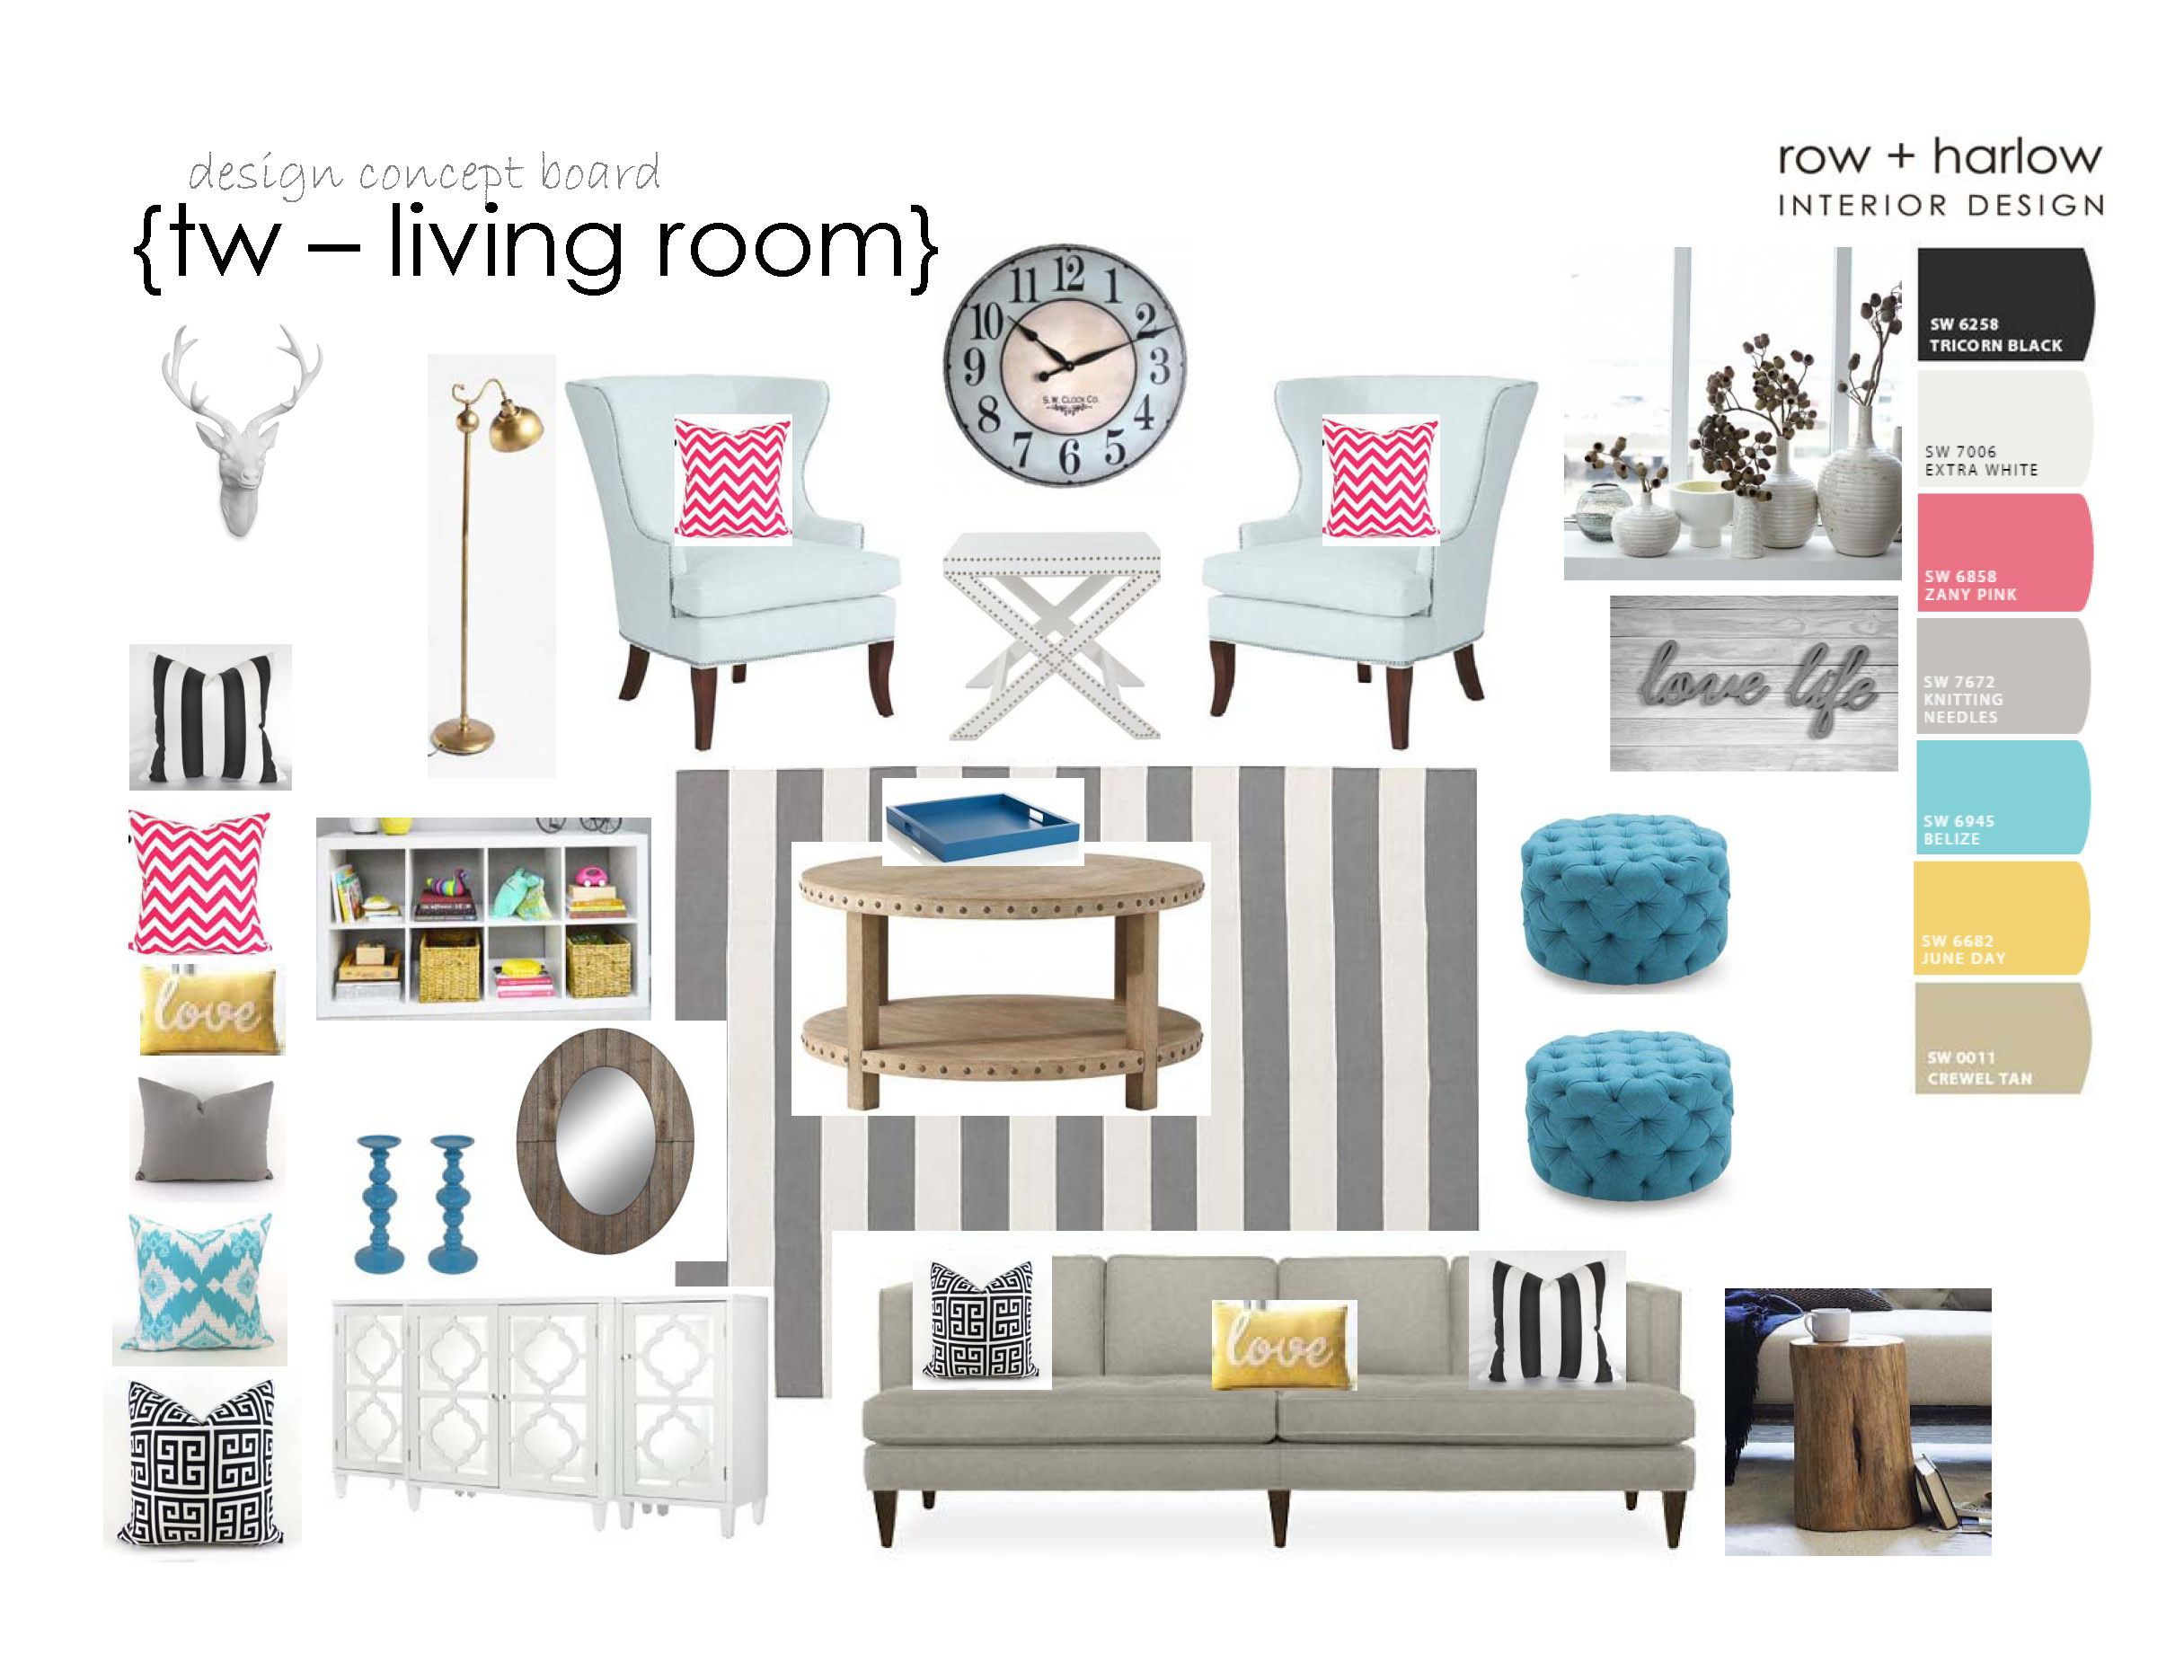 living room inspiration board - design objects | row + harlow ...